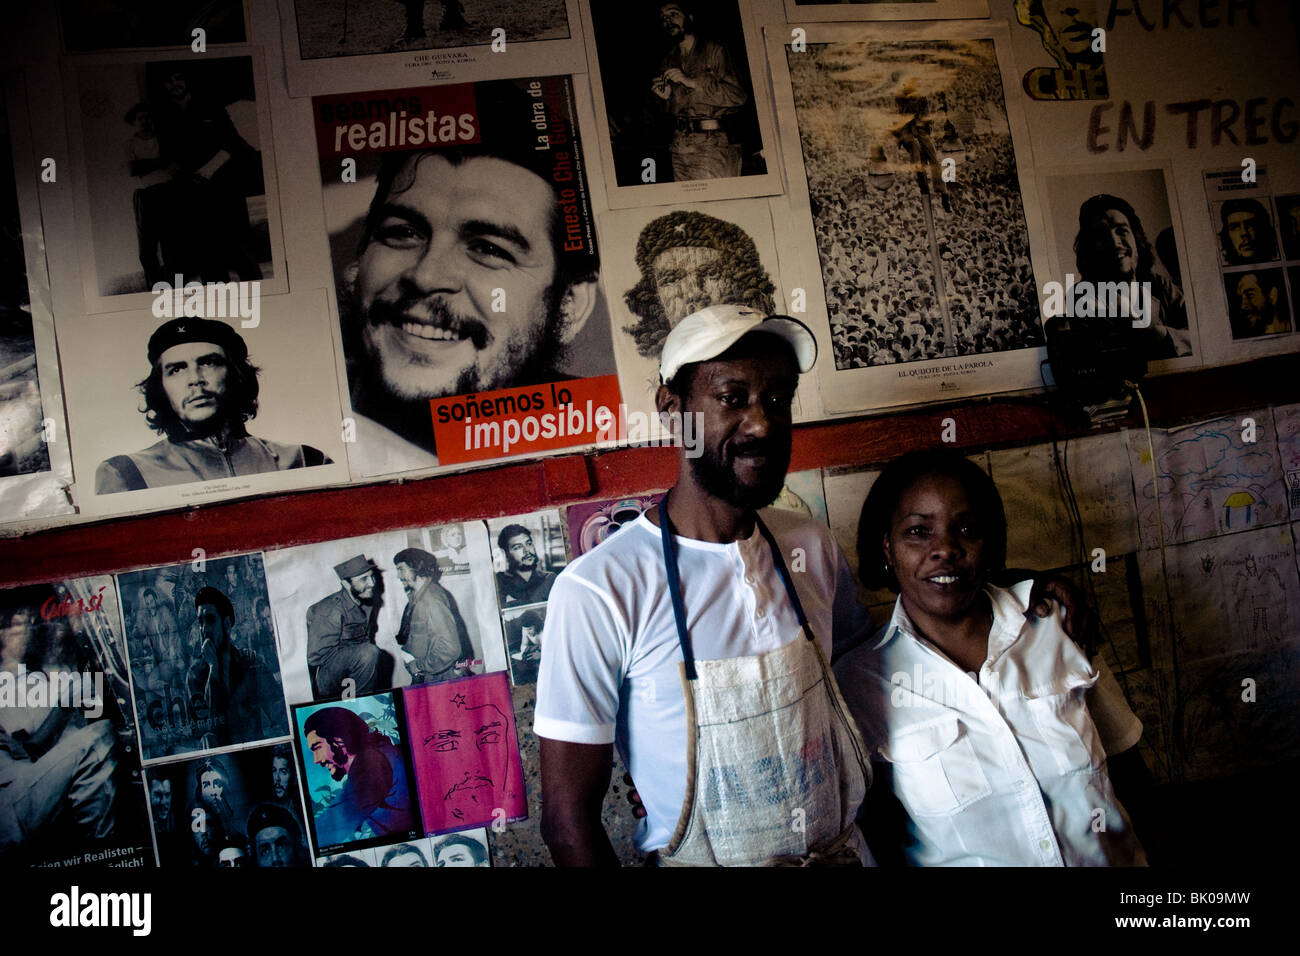 A Cuban bakery employees stand in front of a wall covered by pictures of the Revolutionary leader Che Guevara, Alamar, - Stock Image